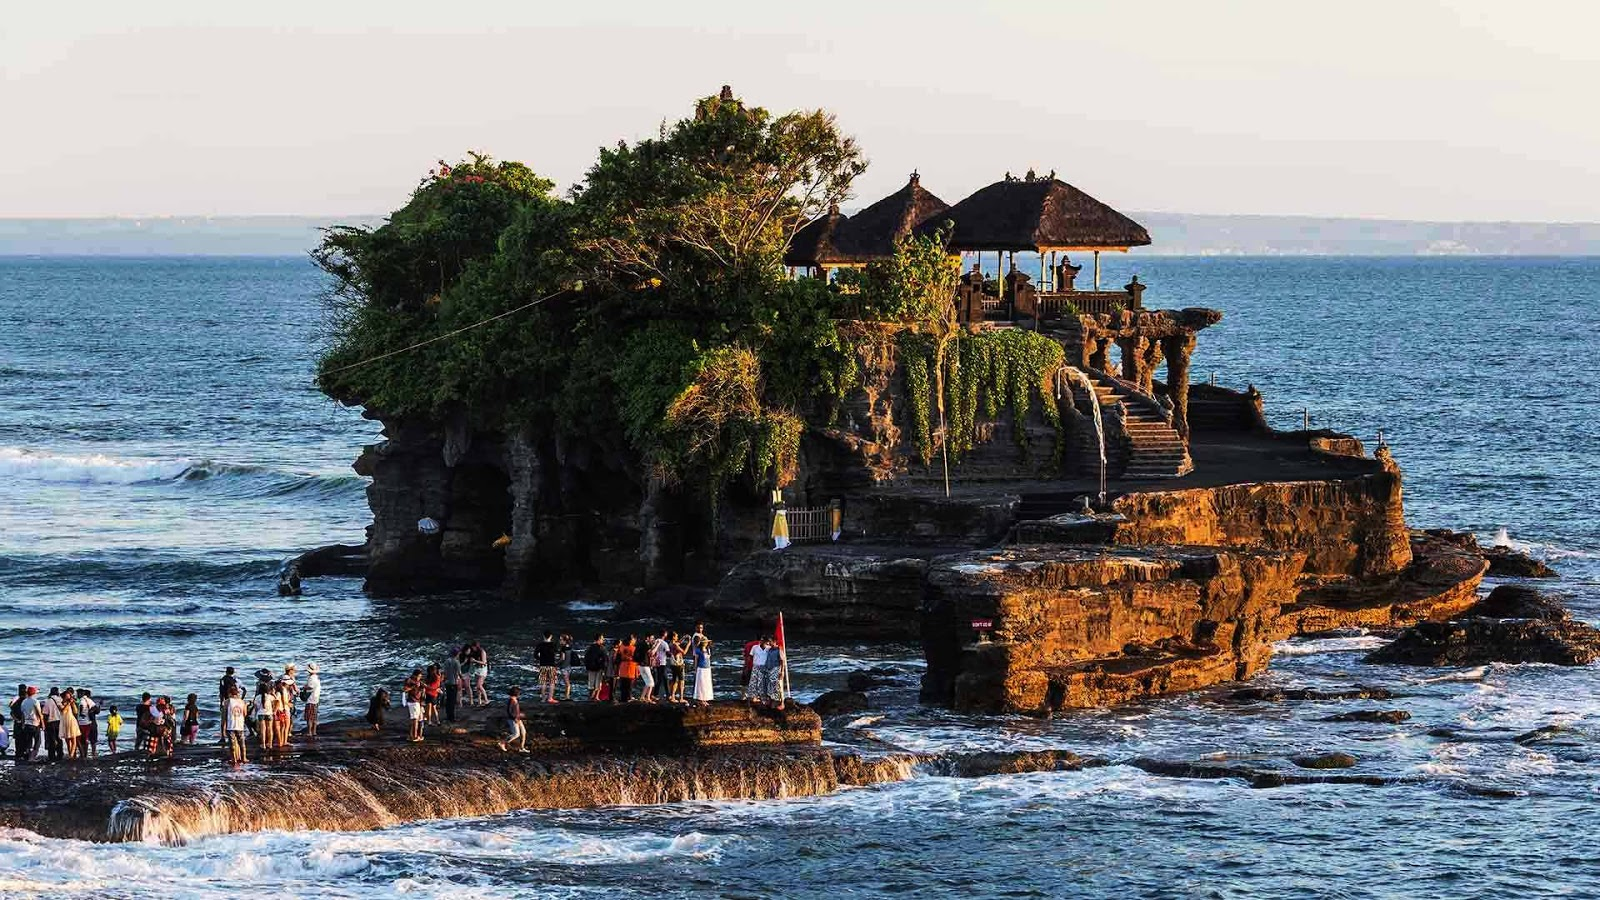 5 Most Beautiful Tourist Attractions in Bali You Must Visit - Bali Island is one of Indonesian tourism in Indonesia which is located in the east of Java Indonesia that has been world famous. In addition to the charm of its exotic scenery, Bali is also famous for its unique variety of arts and culture and is always preserved.